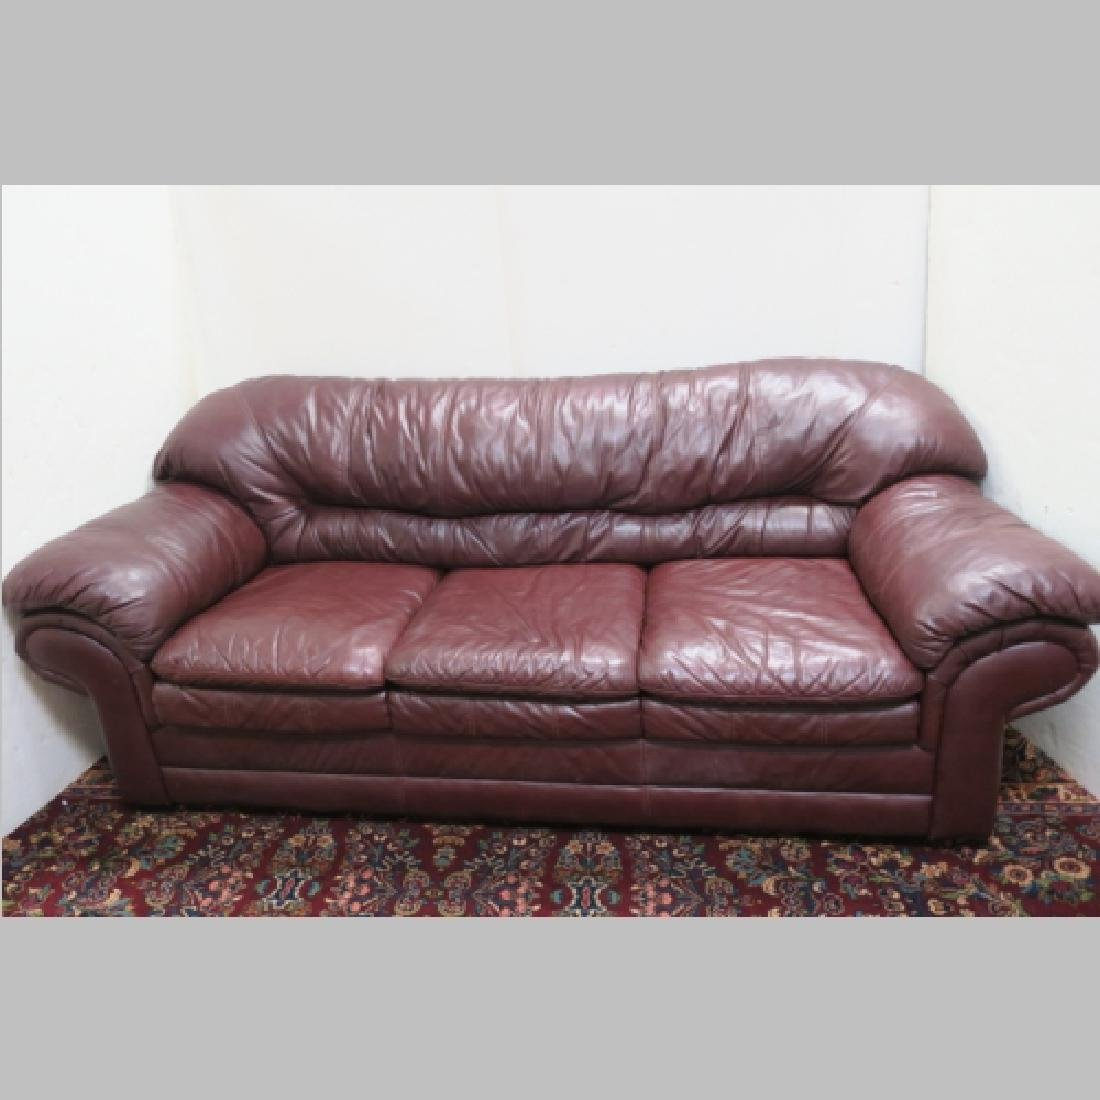 TOSCANA SAV PORTO Leather Sofa: